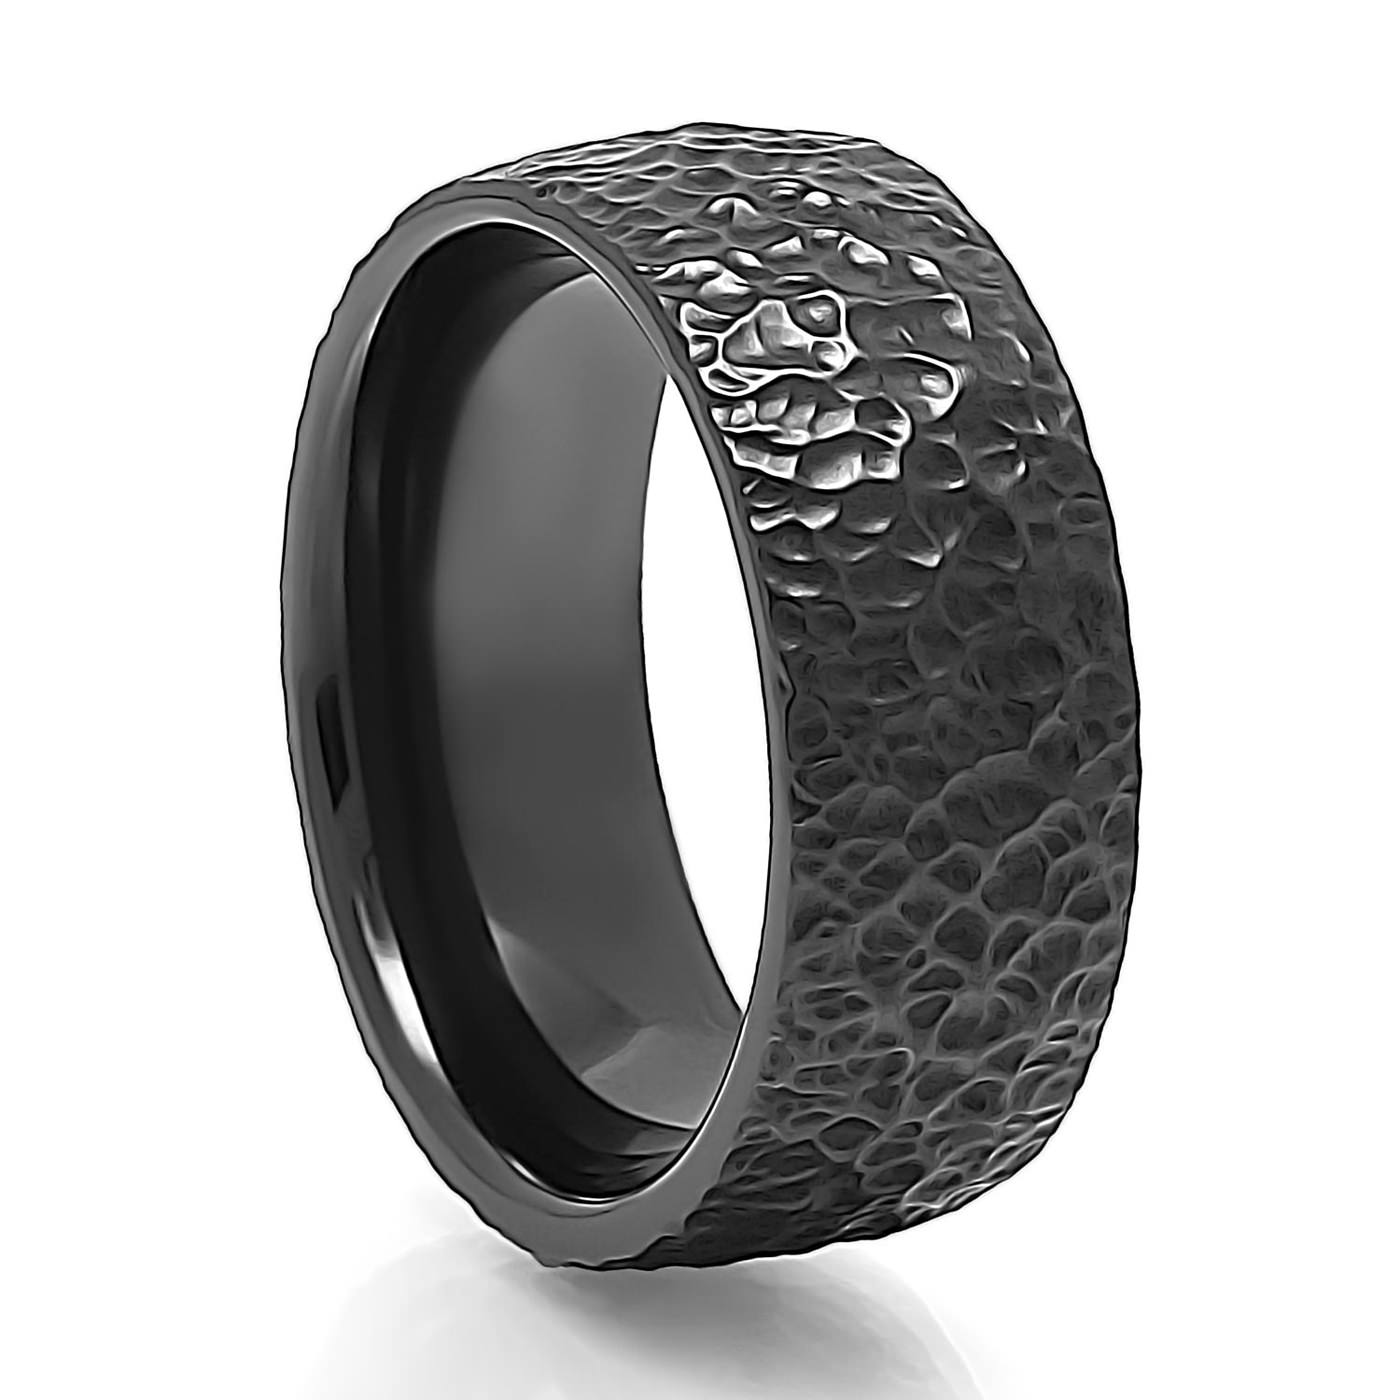 mens zaboda textured black zirconium ring by jr yates - Titanium Wedding Rings For Men